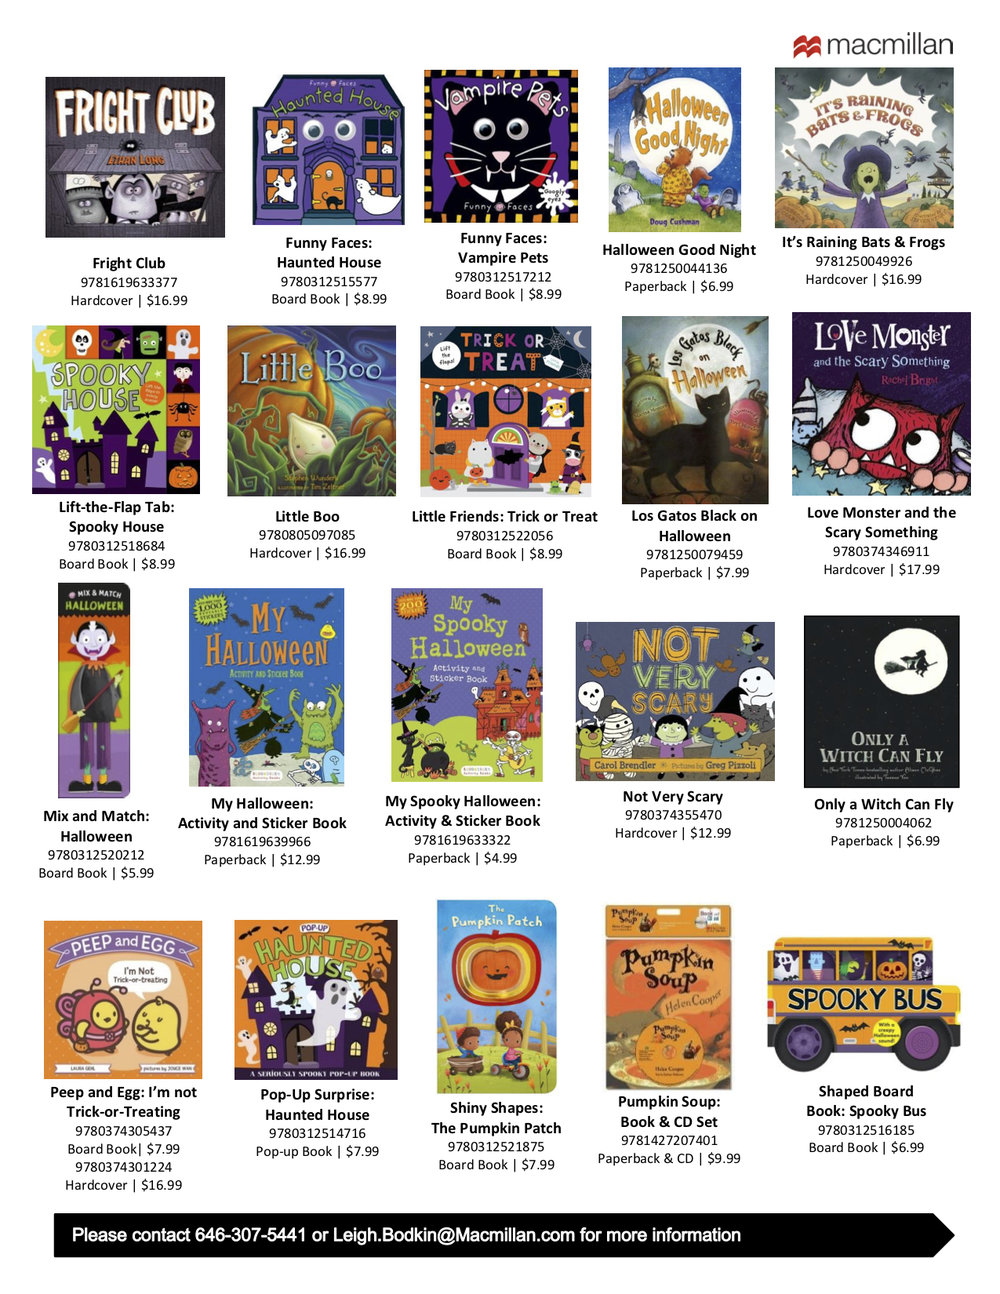 2 Macmillan Halloween Sell Sheet 2018.jpg